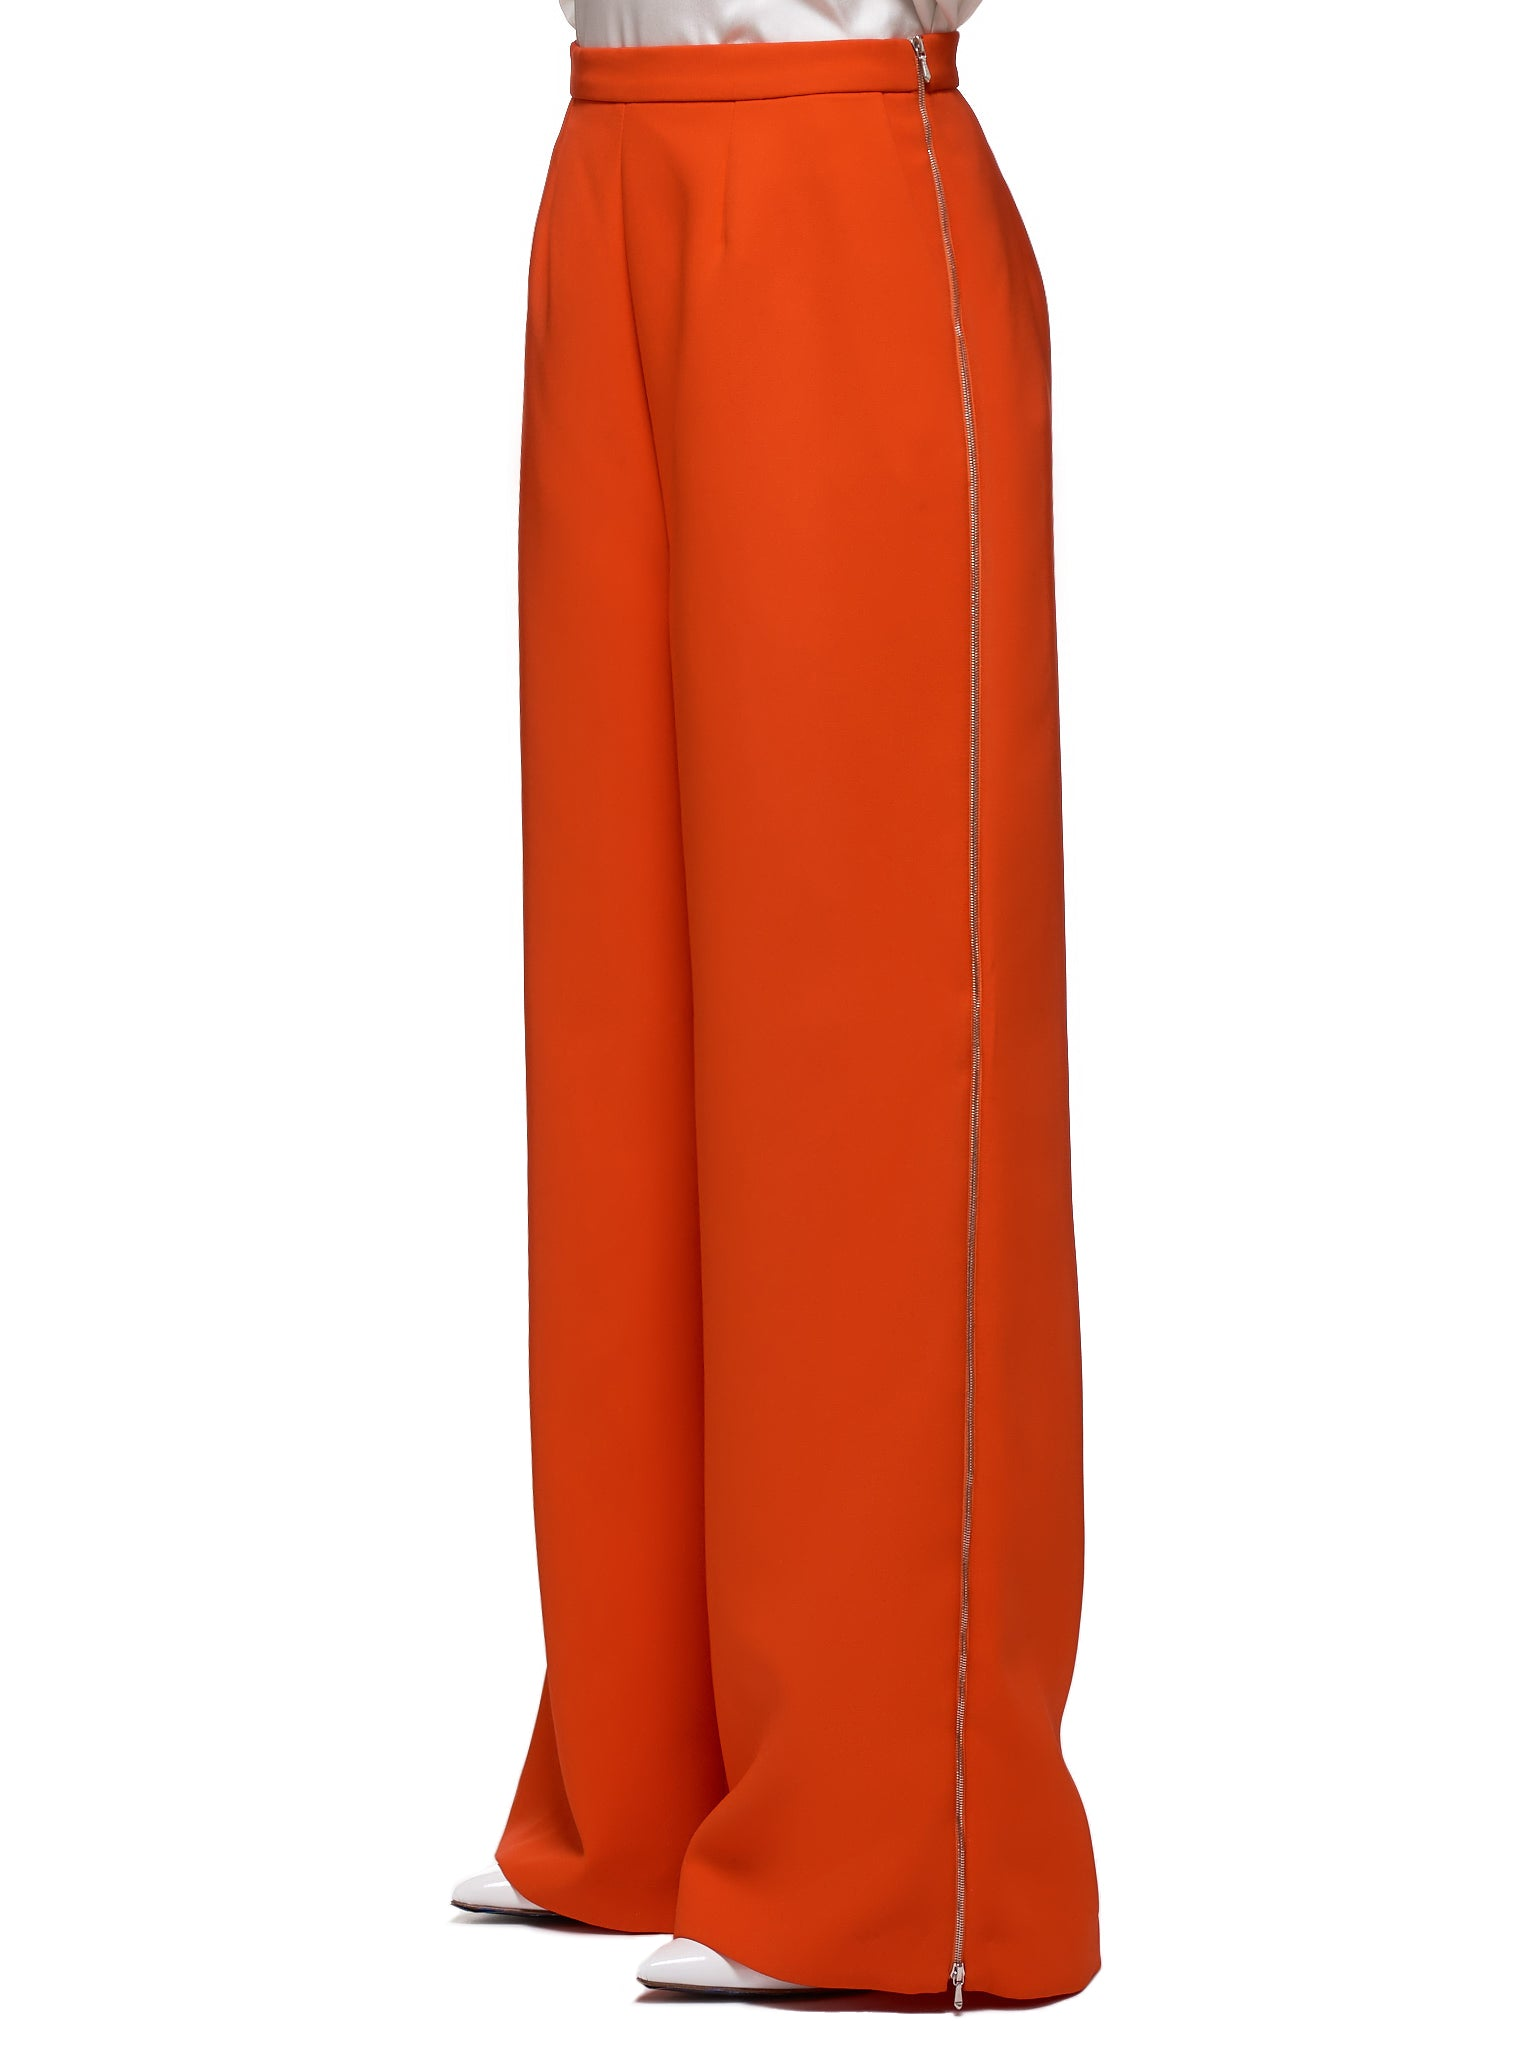 Nicolas Lecourt Mansion Pants - Hlorenzo Side